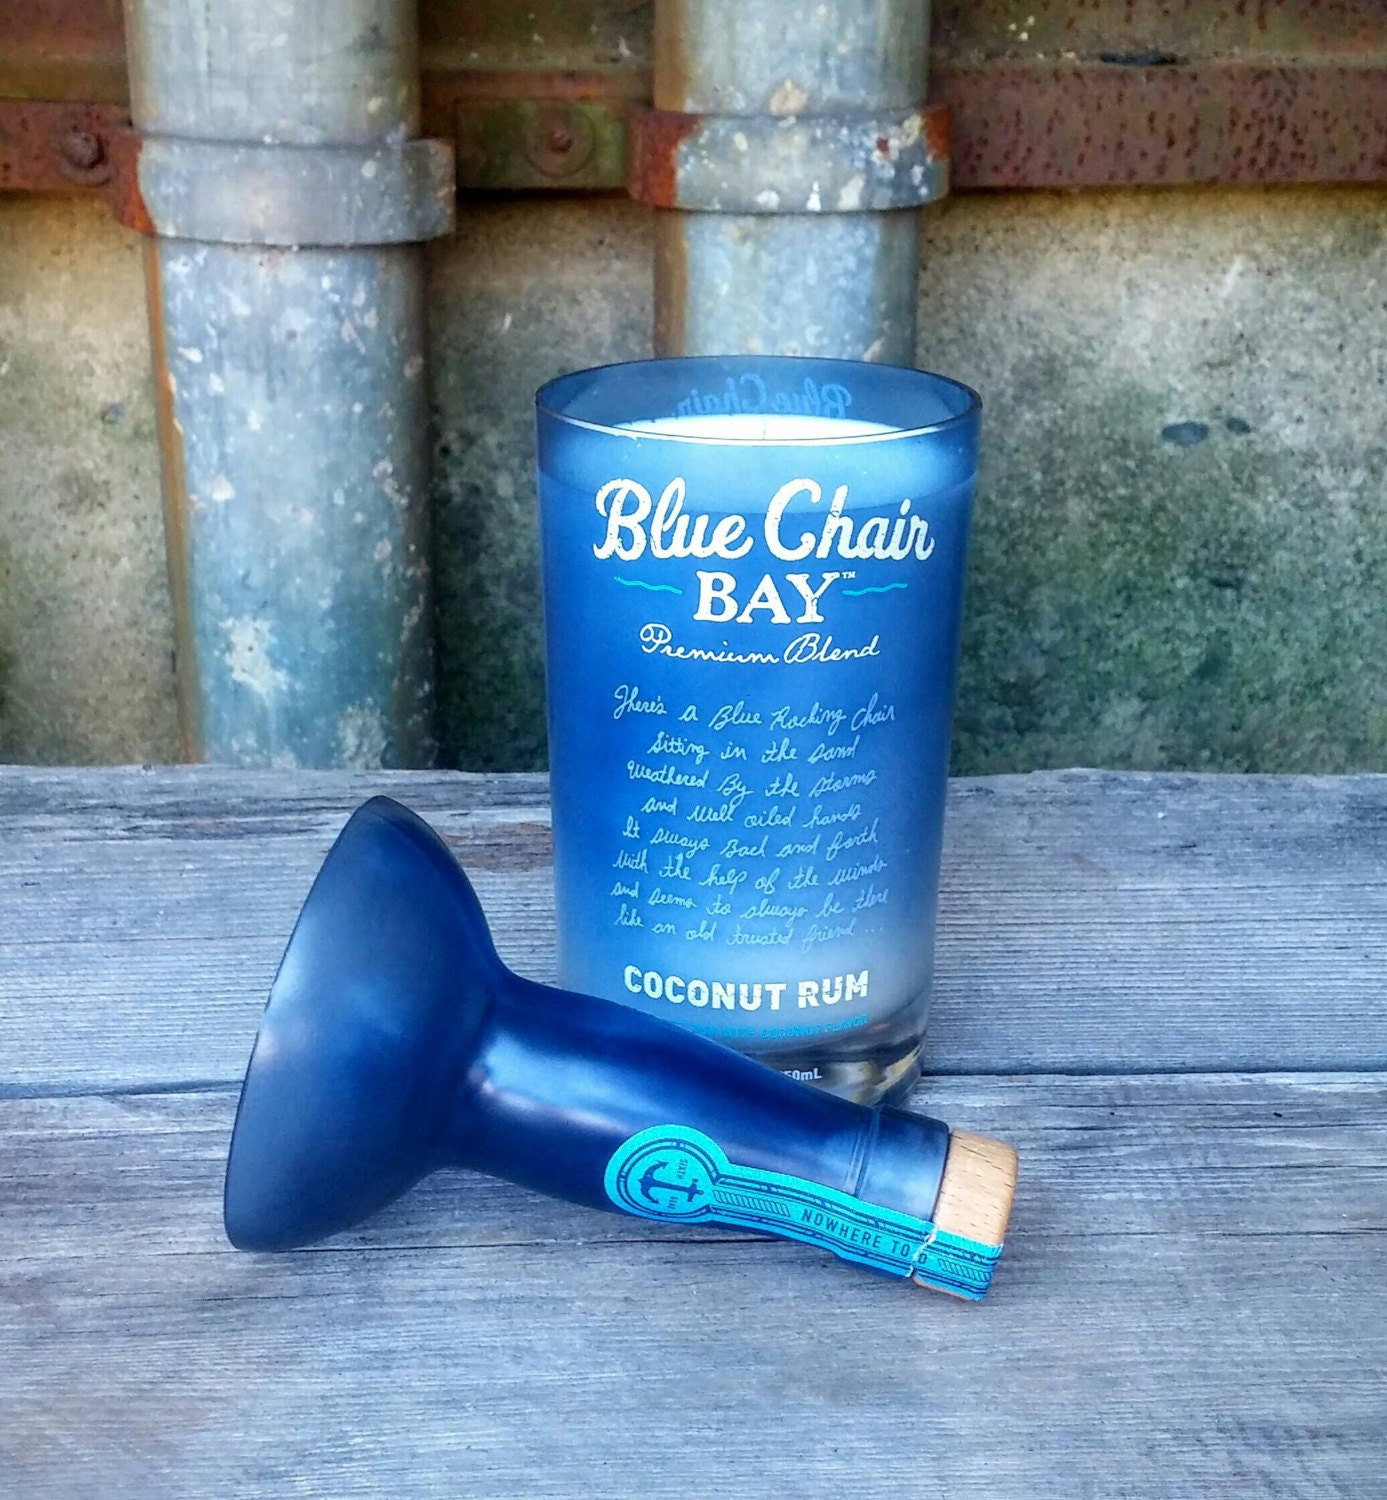 blue chair bay rum liquor bottle candle with by rewineit02346